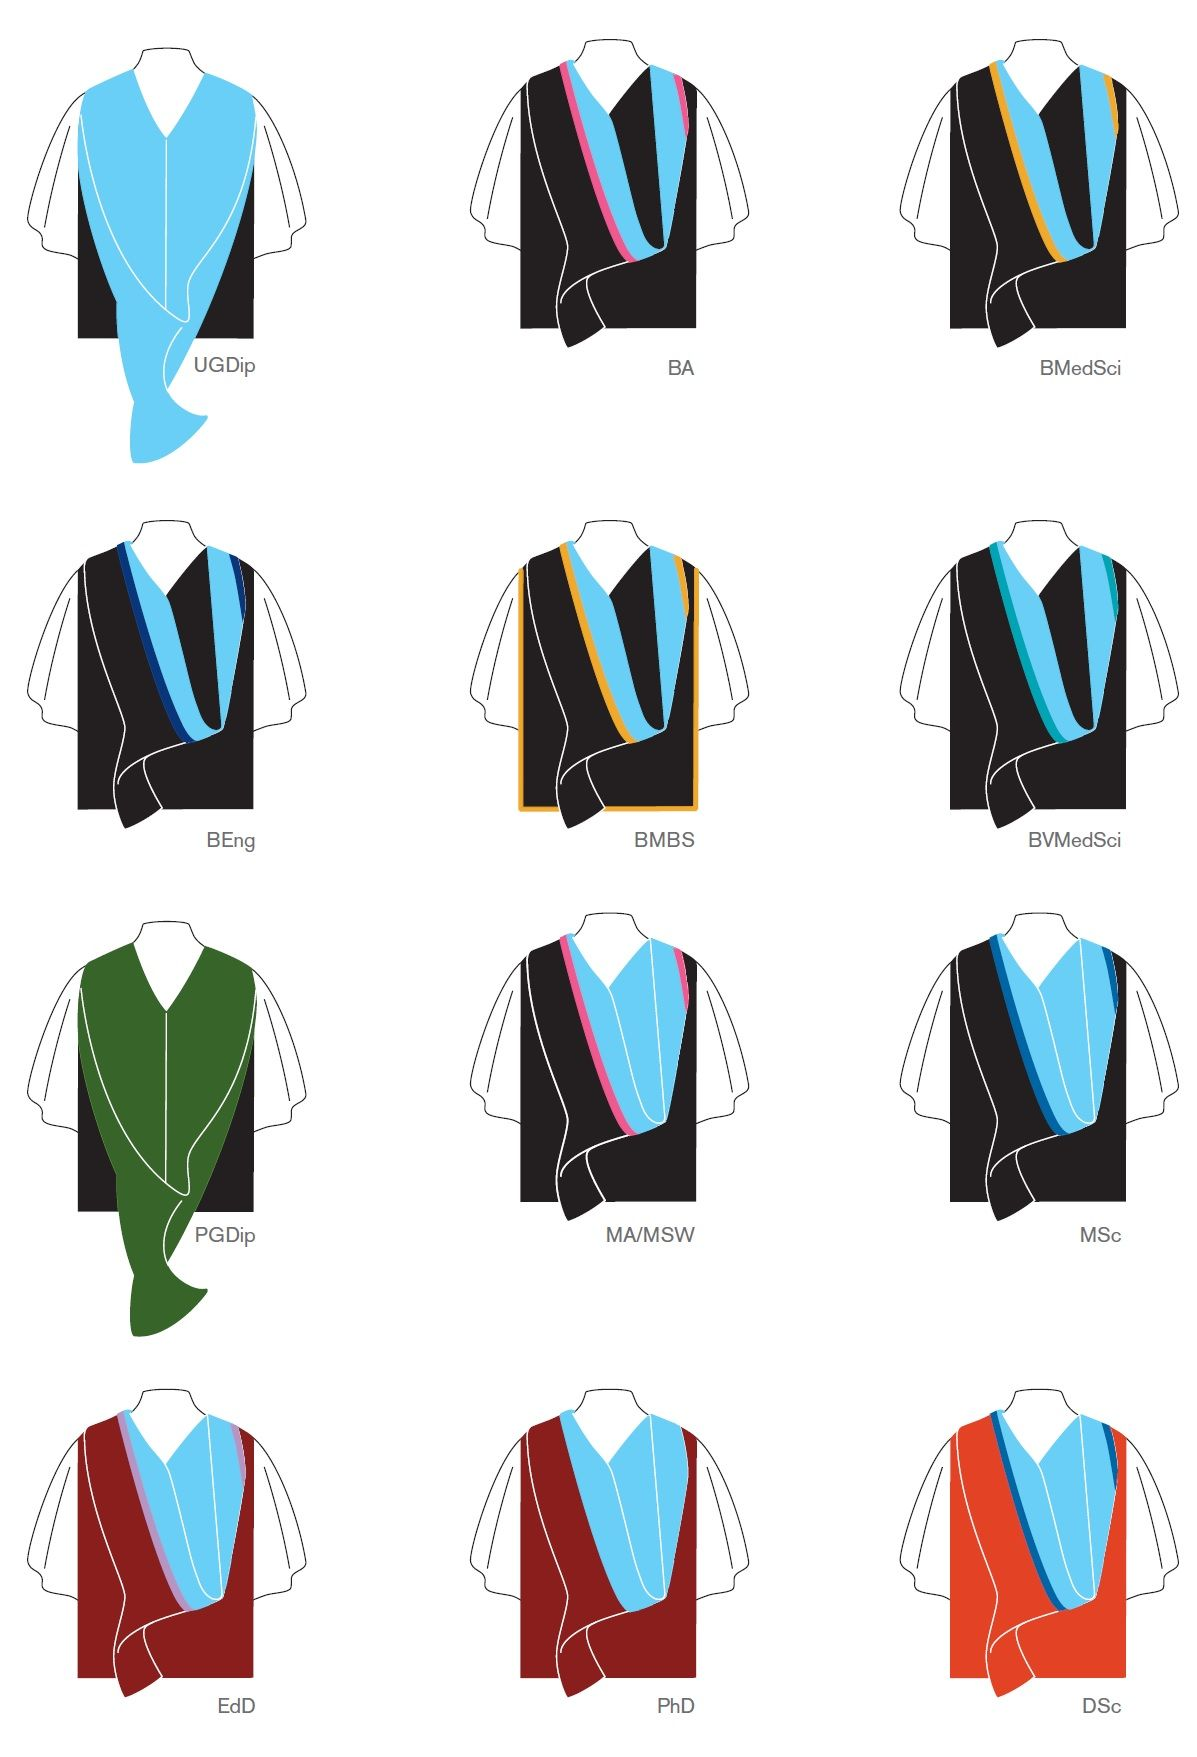 Graduation hood colours by degree | Academic dress | Pinterest ...